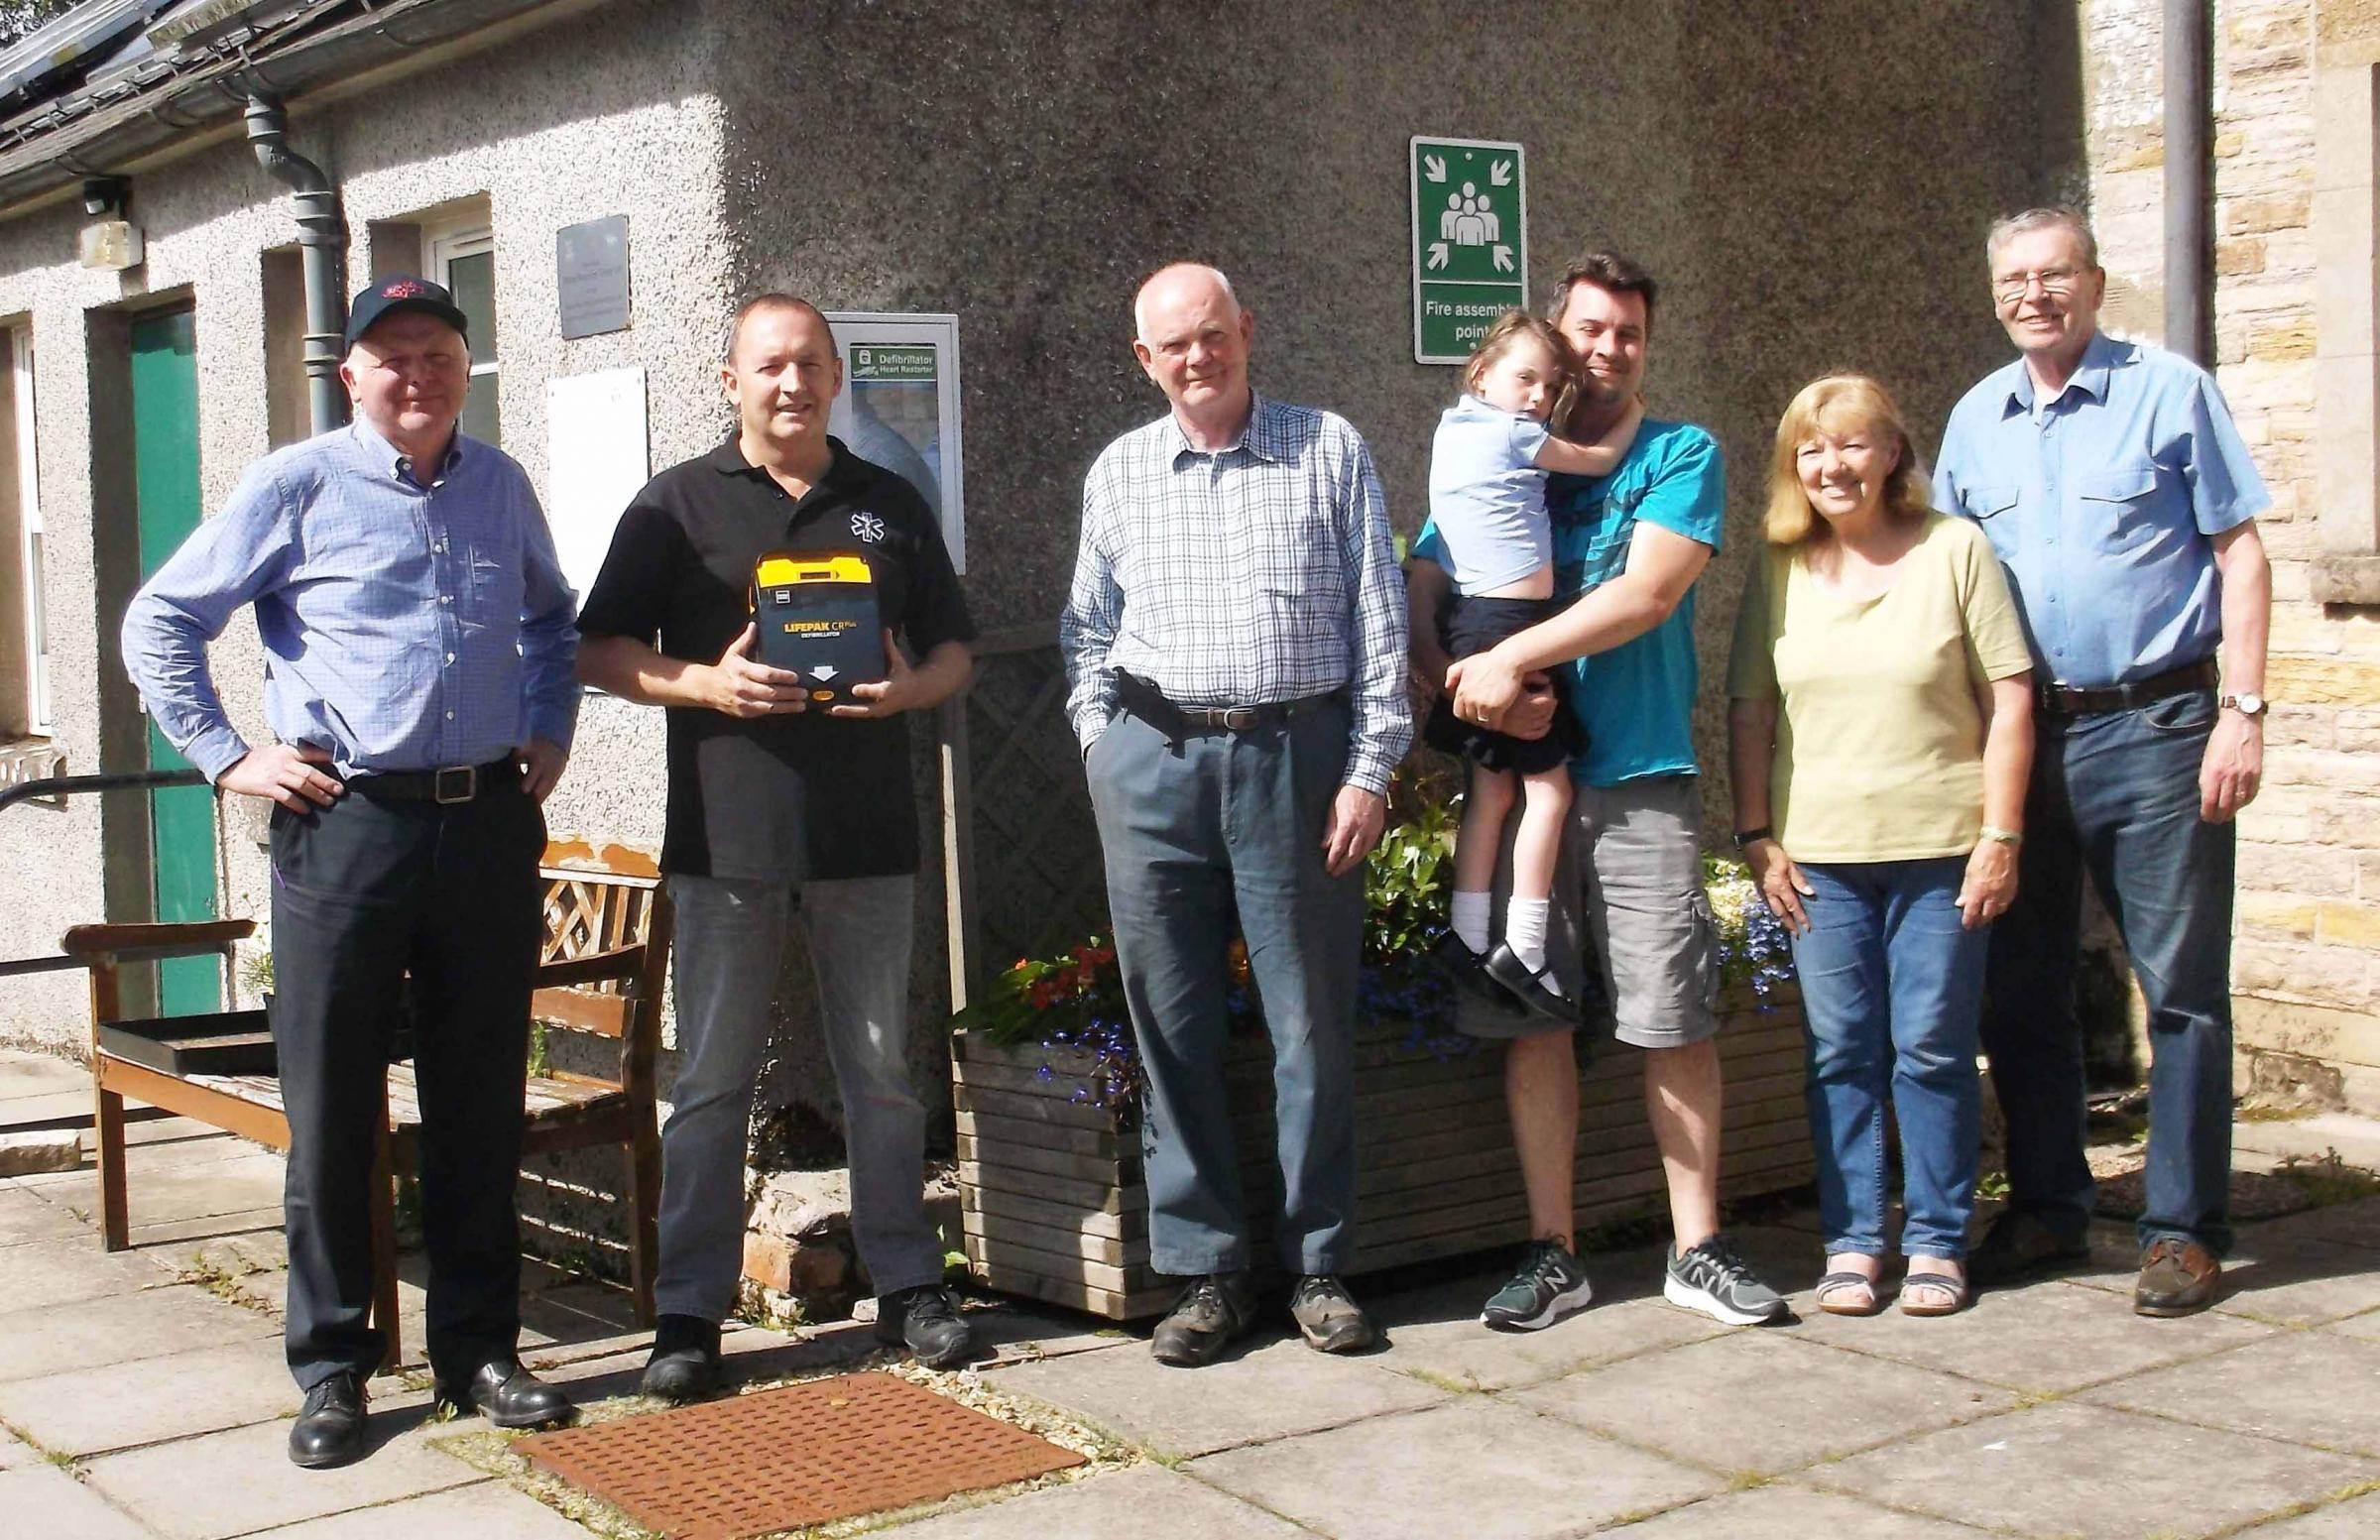 Ian Rose (William Rose and Sons), paramedic Tony Haley, William Rose, local resident Adam Bullough and daughter Ellie and Cilla and Alan Davidson with the new defibrillator